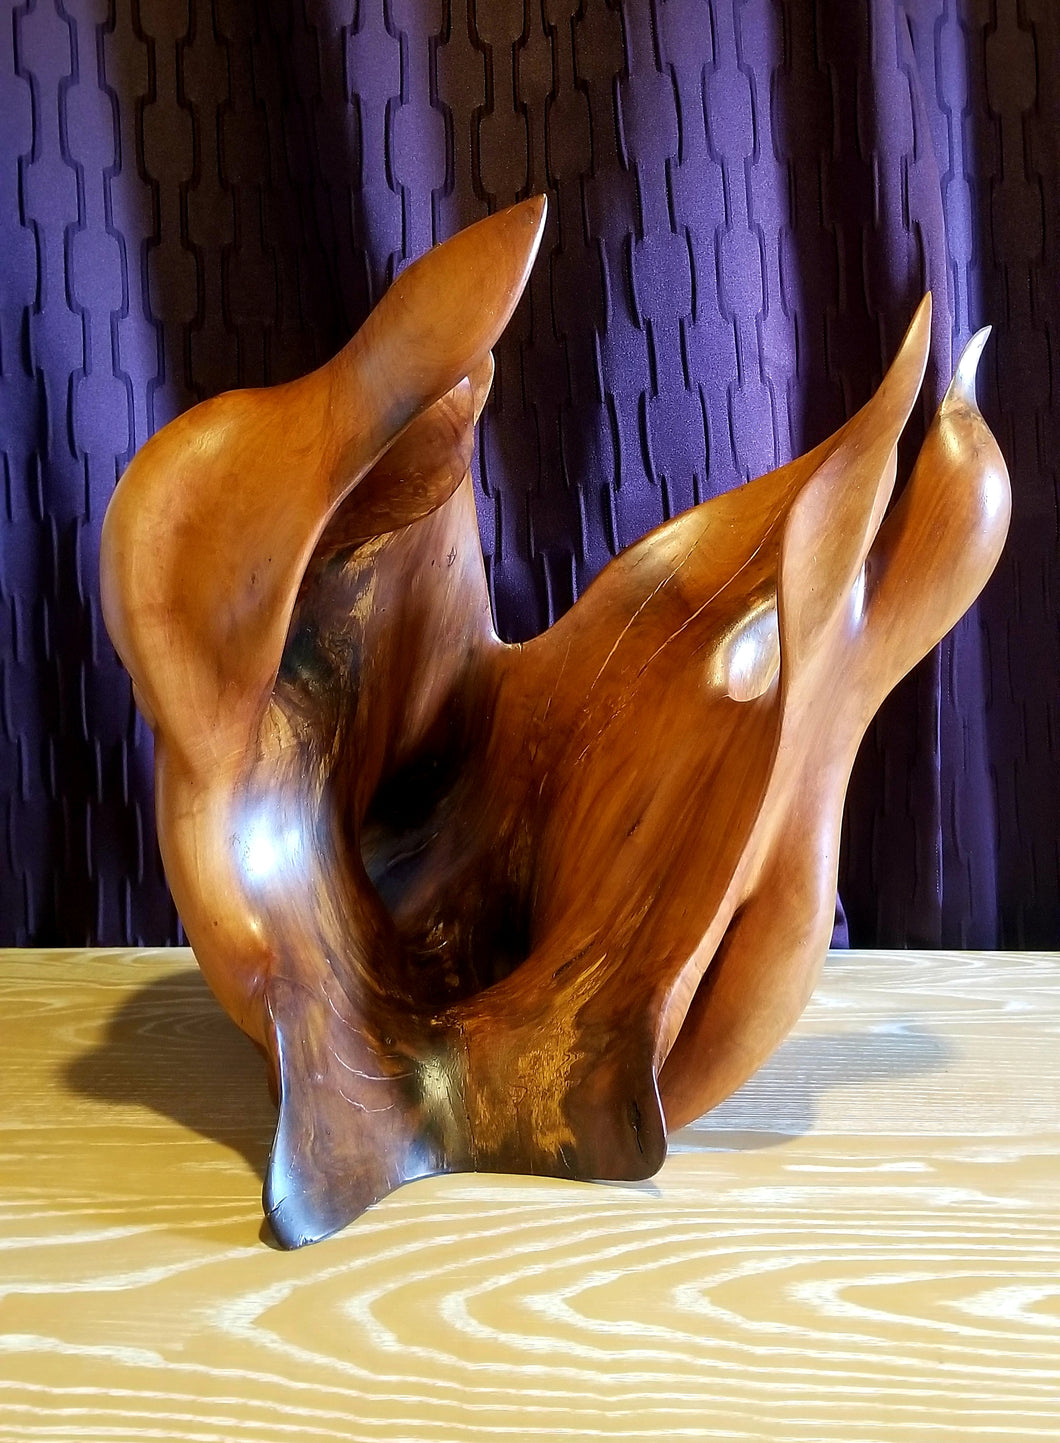 En Fuego – Charles Slaybaugh Original Wood Sculpture